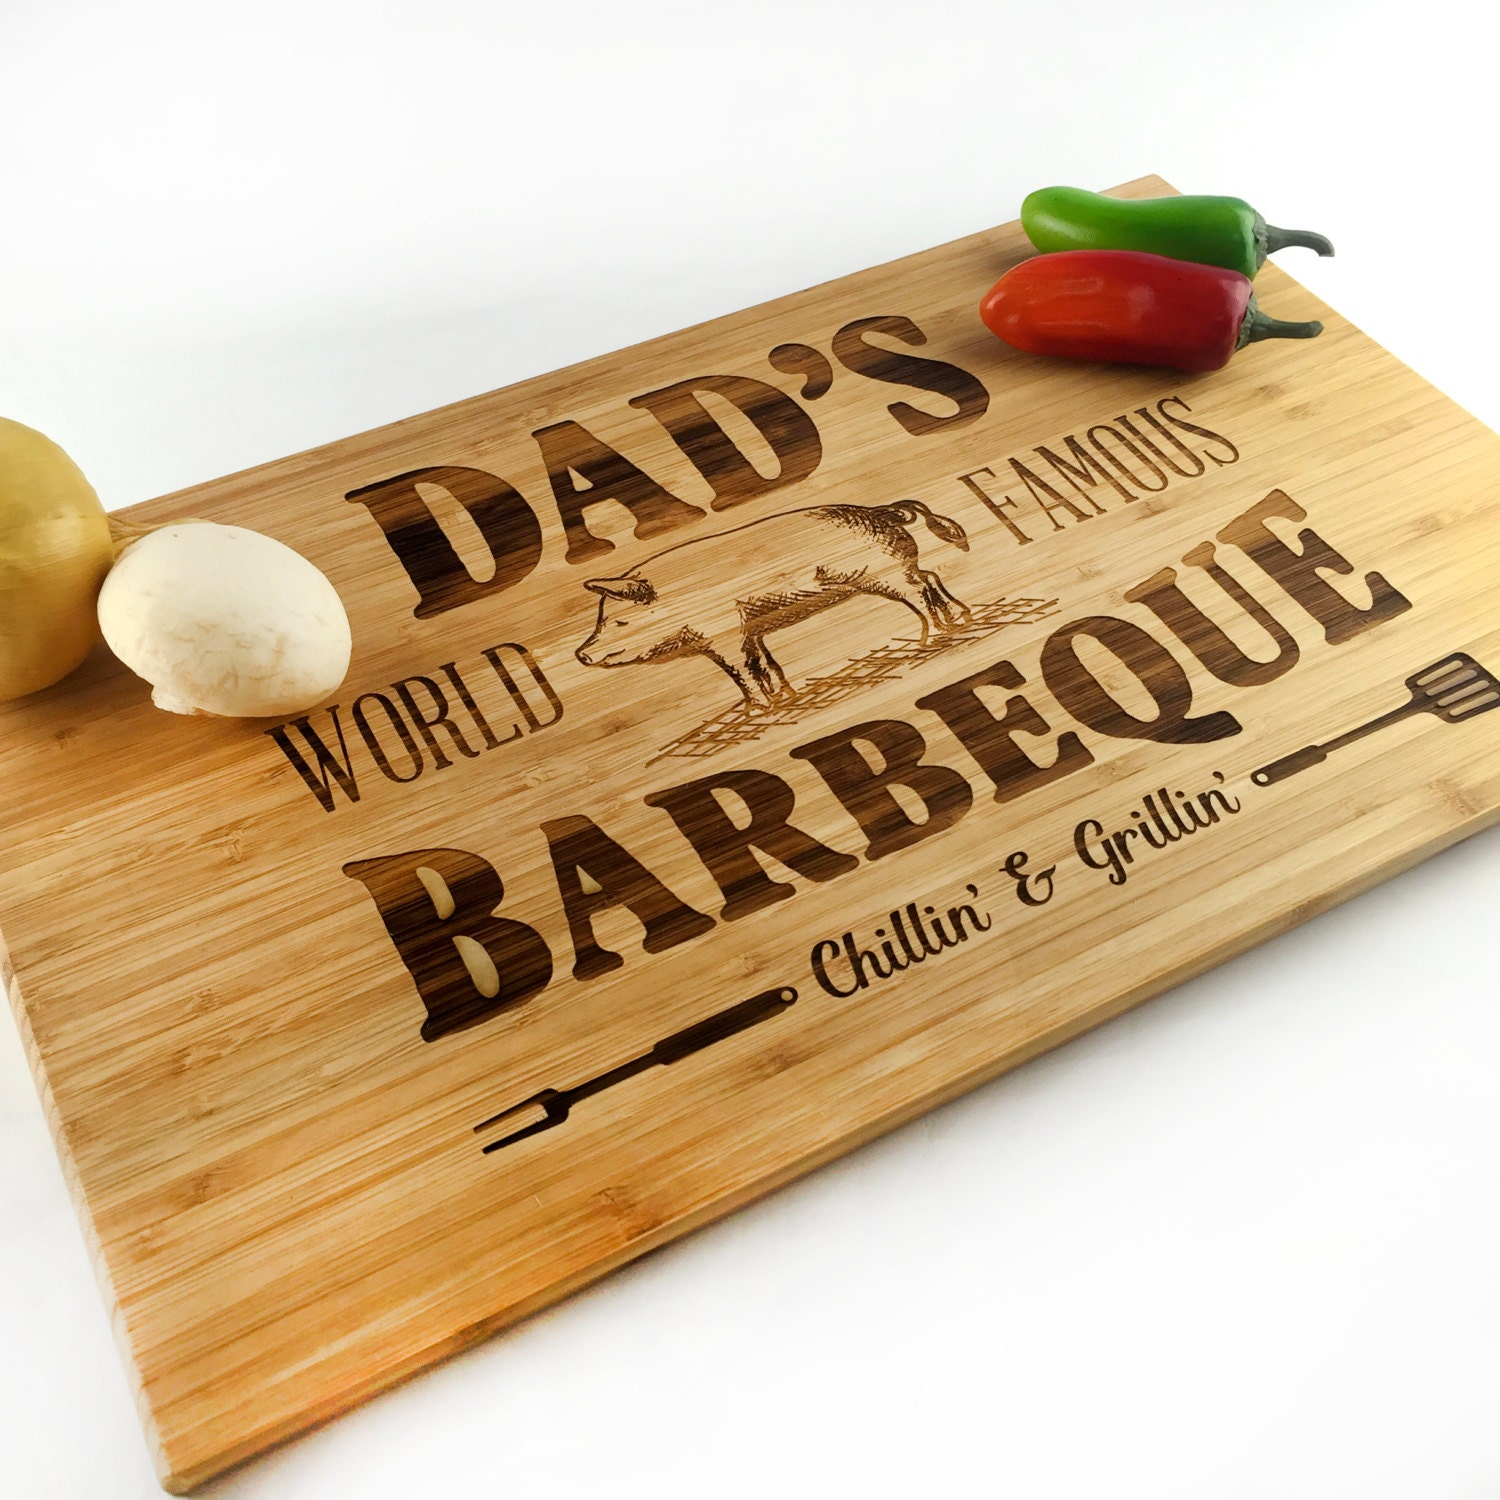 Fathers Day Gift Cutting Board Dad Jokes Grill Chill Dads World ...